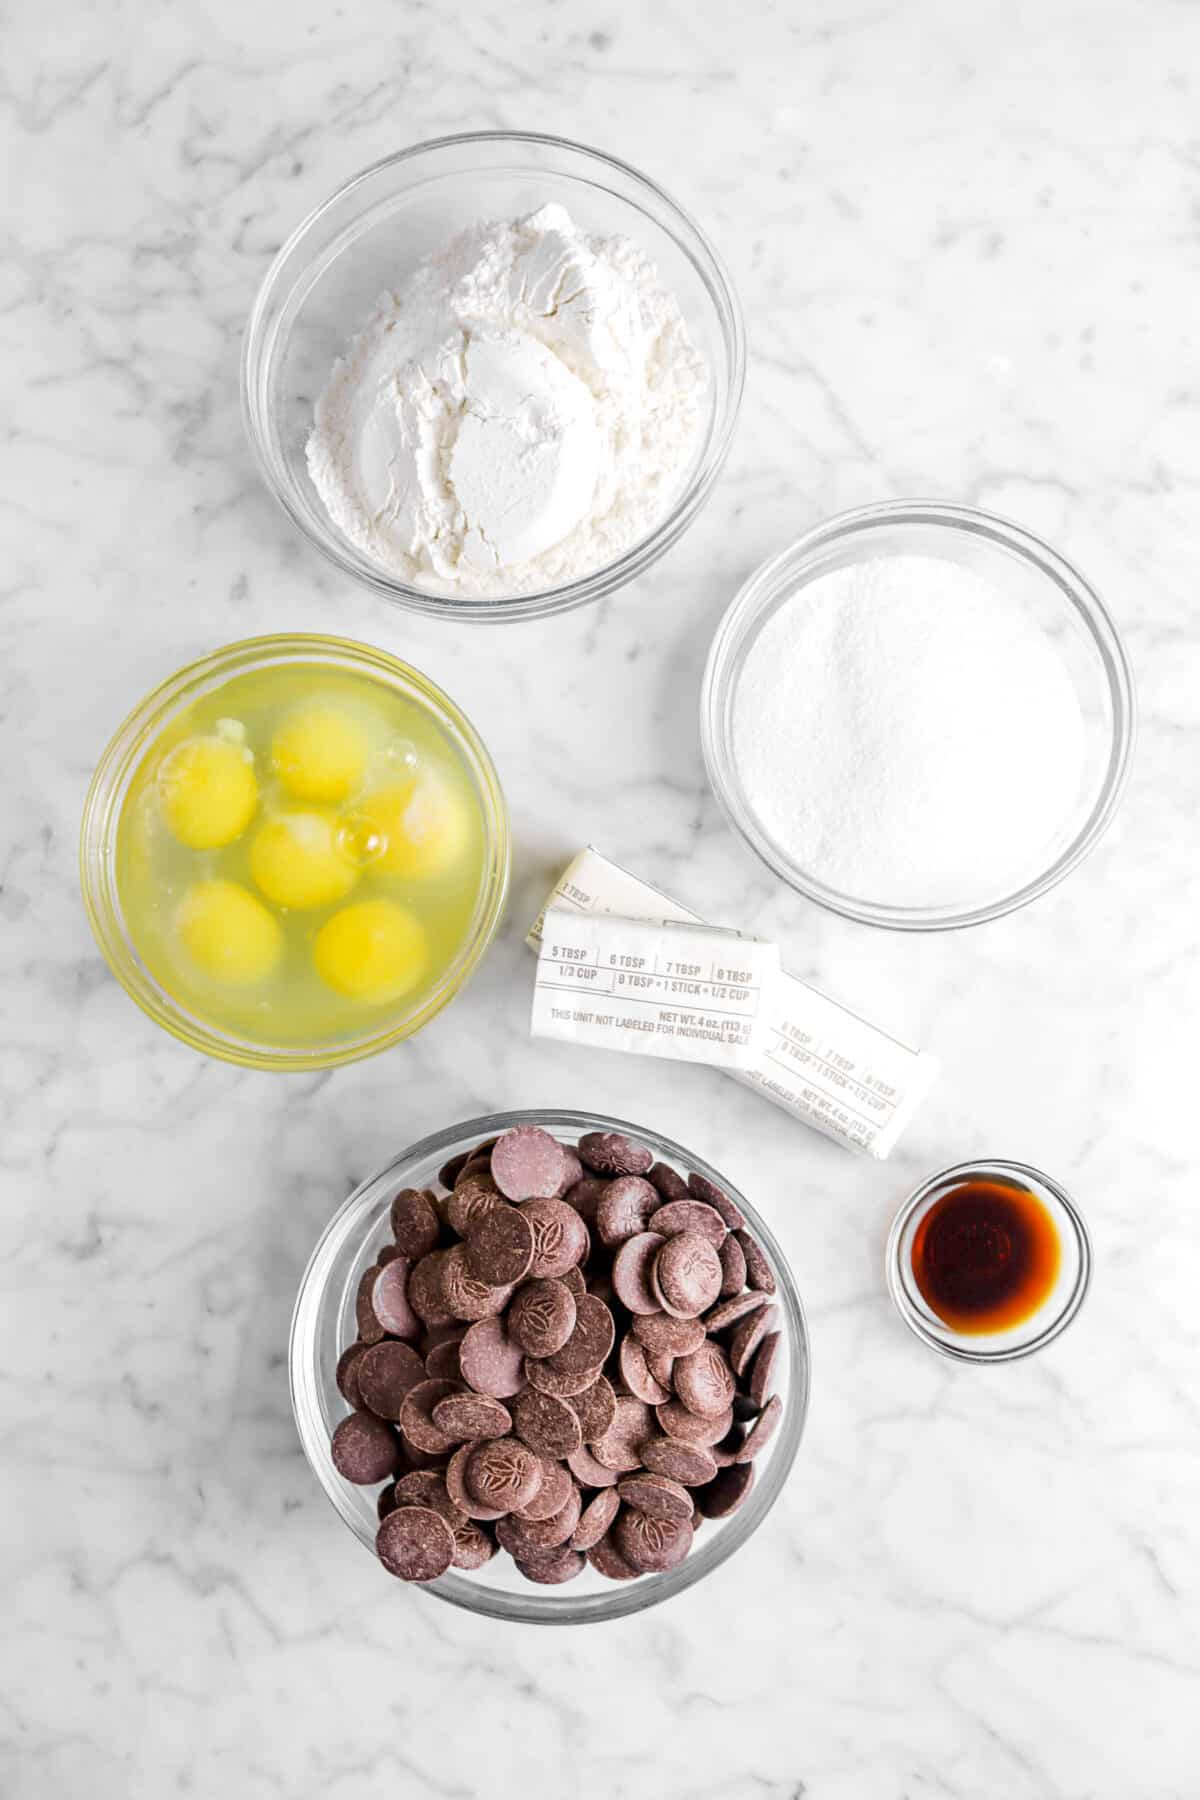 flour, sugar, eggs, butter, vanilla, and chocolate in glass bowls